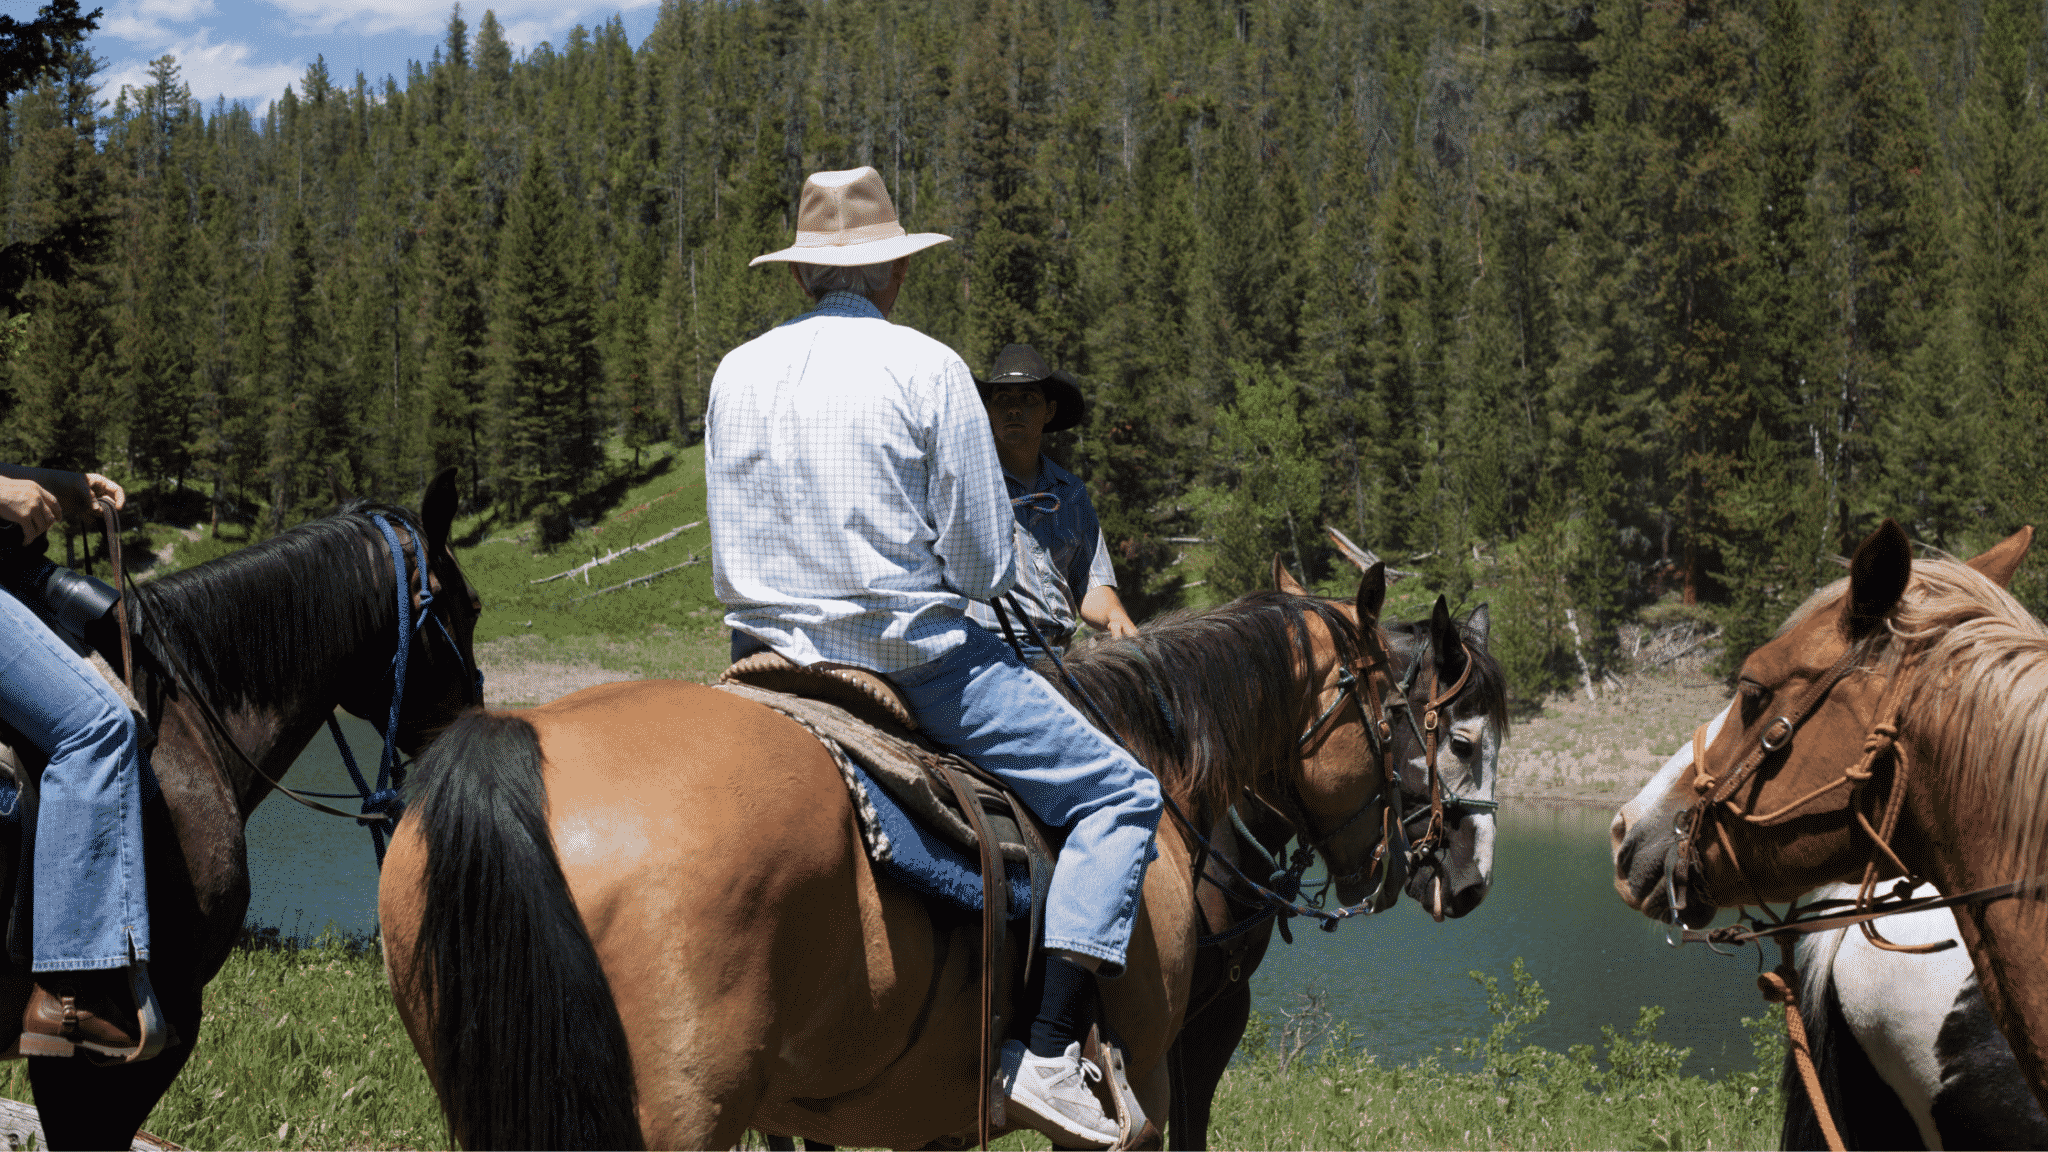 keep terrain in mind when trying to plan for long trail rides